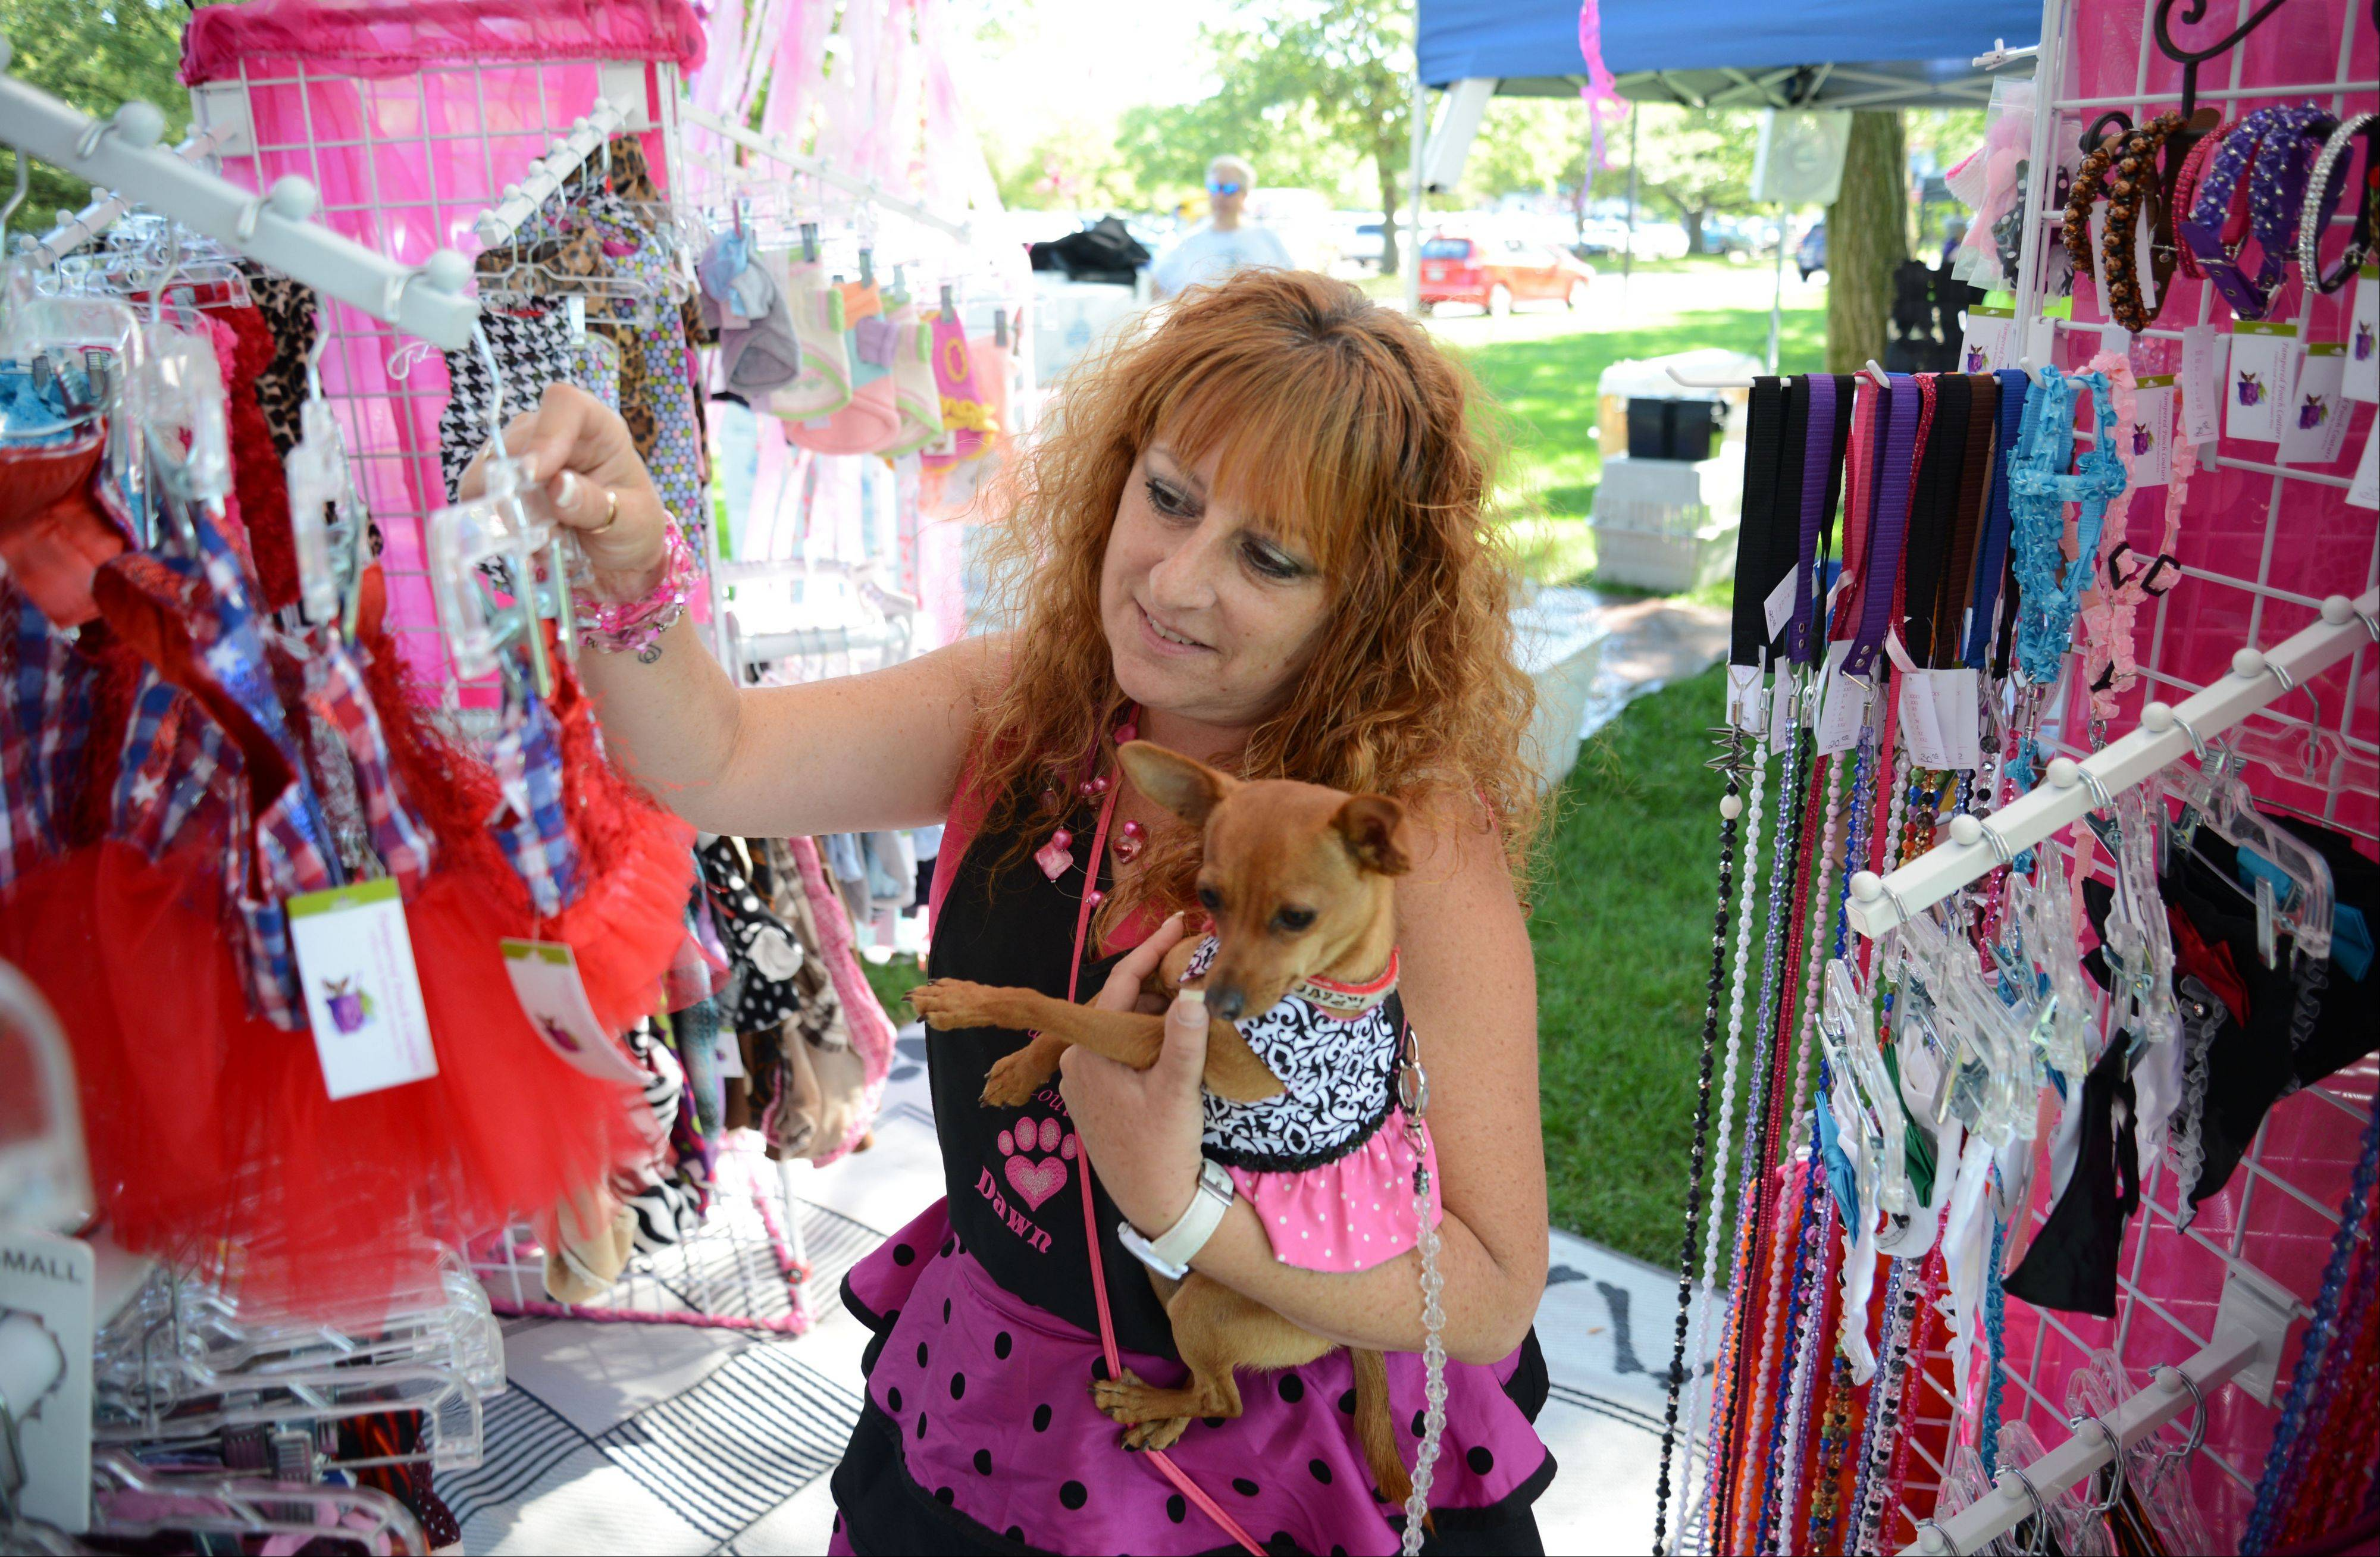 Dawn Kelsey and her dog look at items for sale at the Pampered Pooch Couture booth during the annual Dog Days celebration Saturday at Cantigny Park in Wheaton.